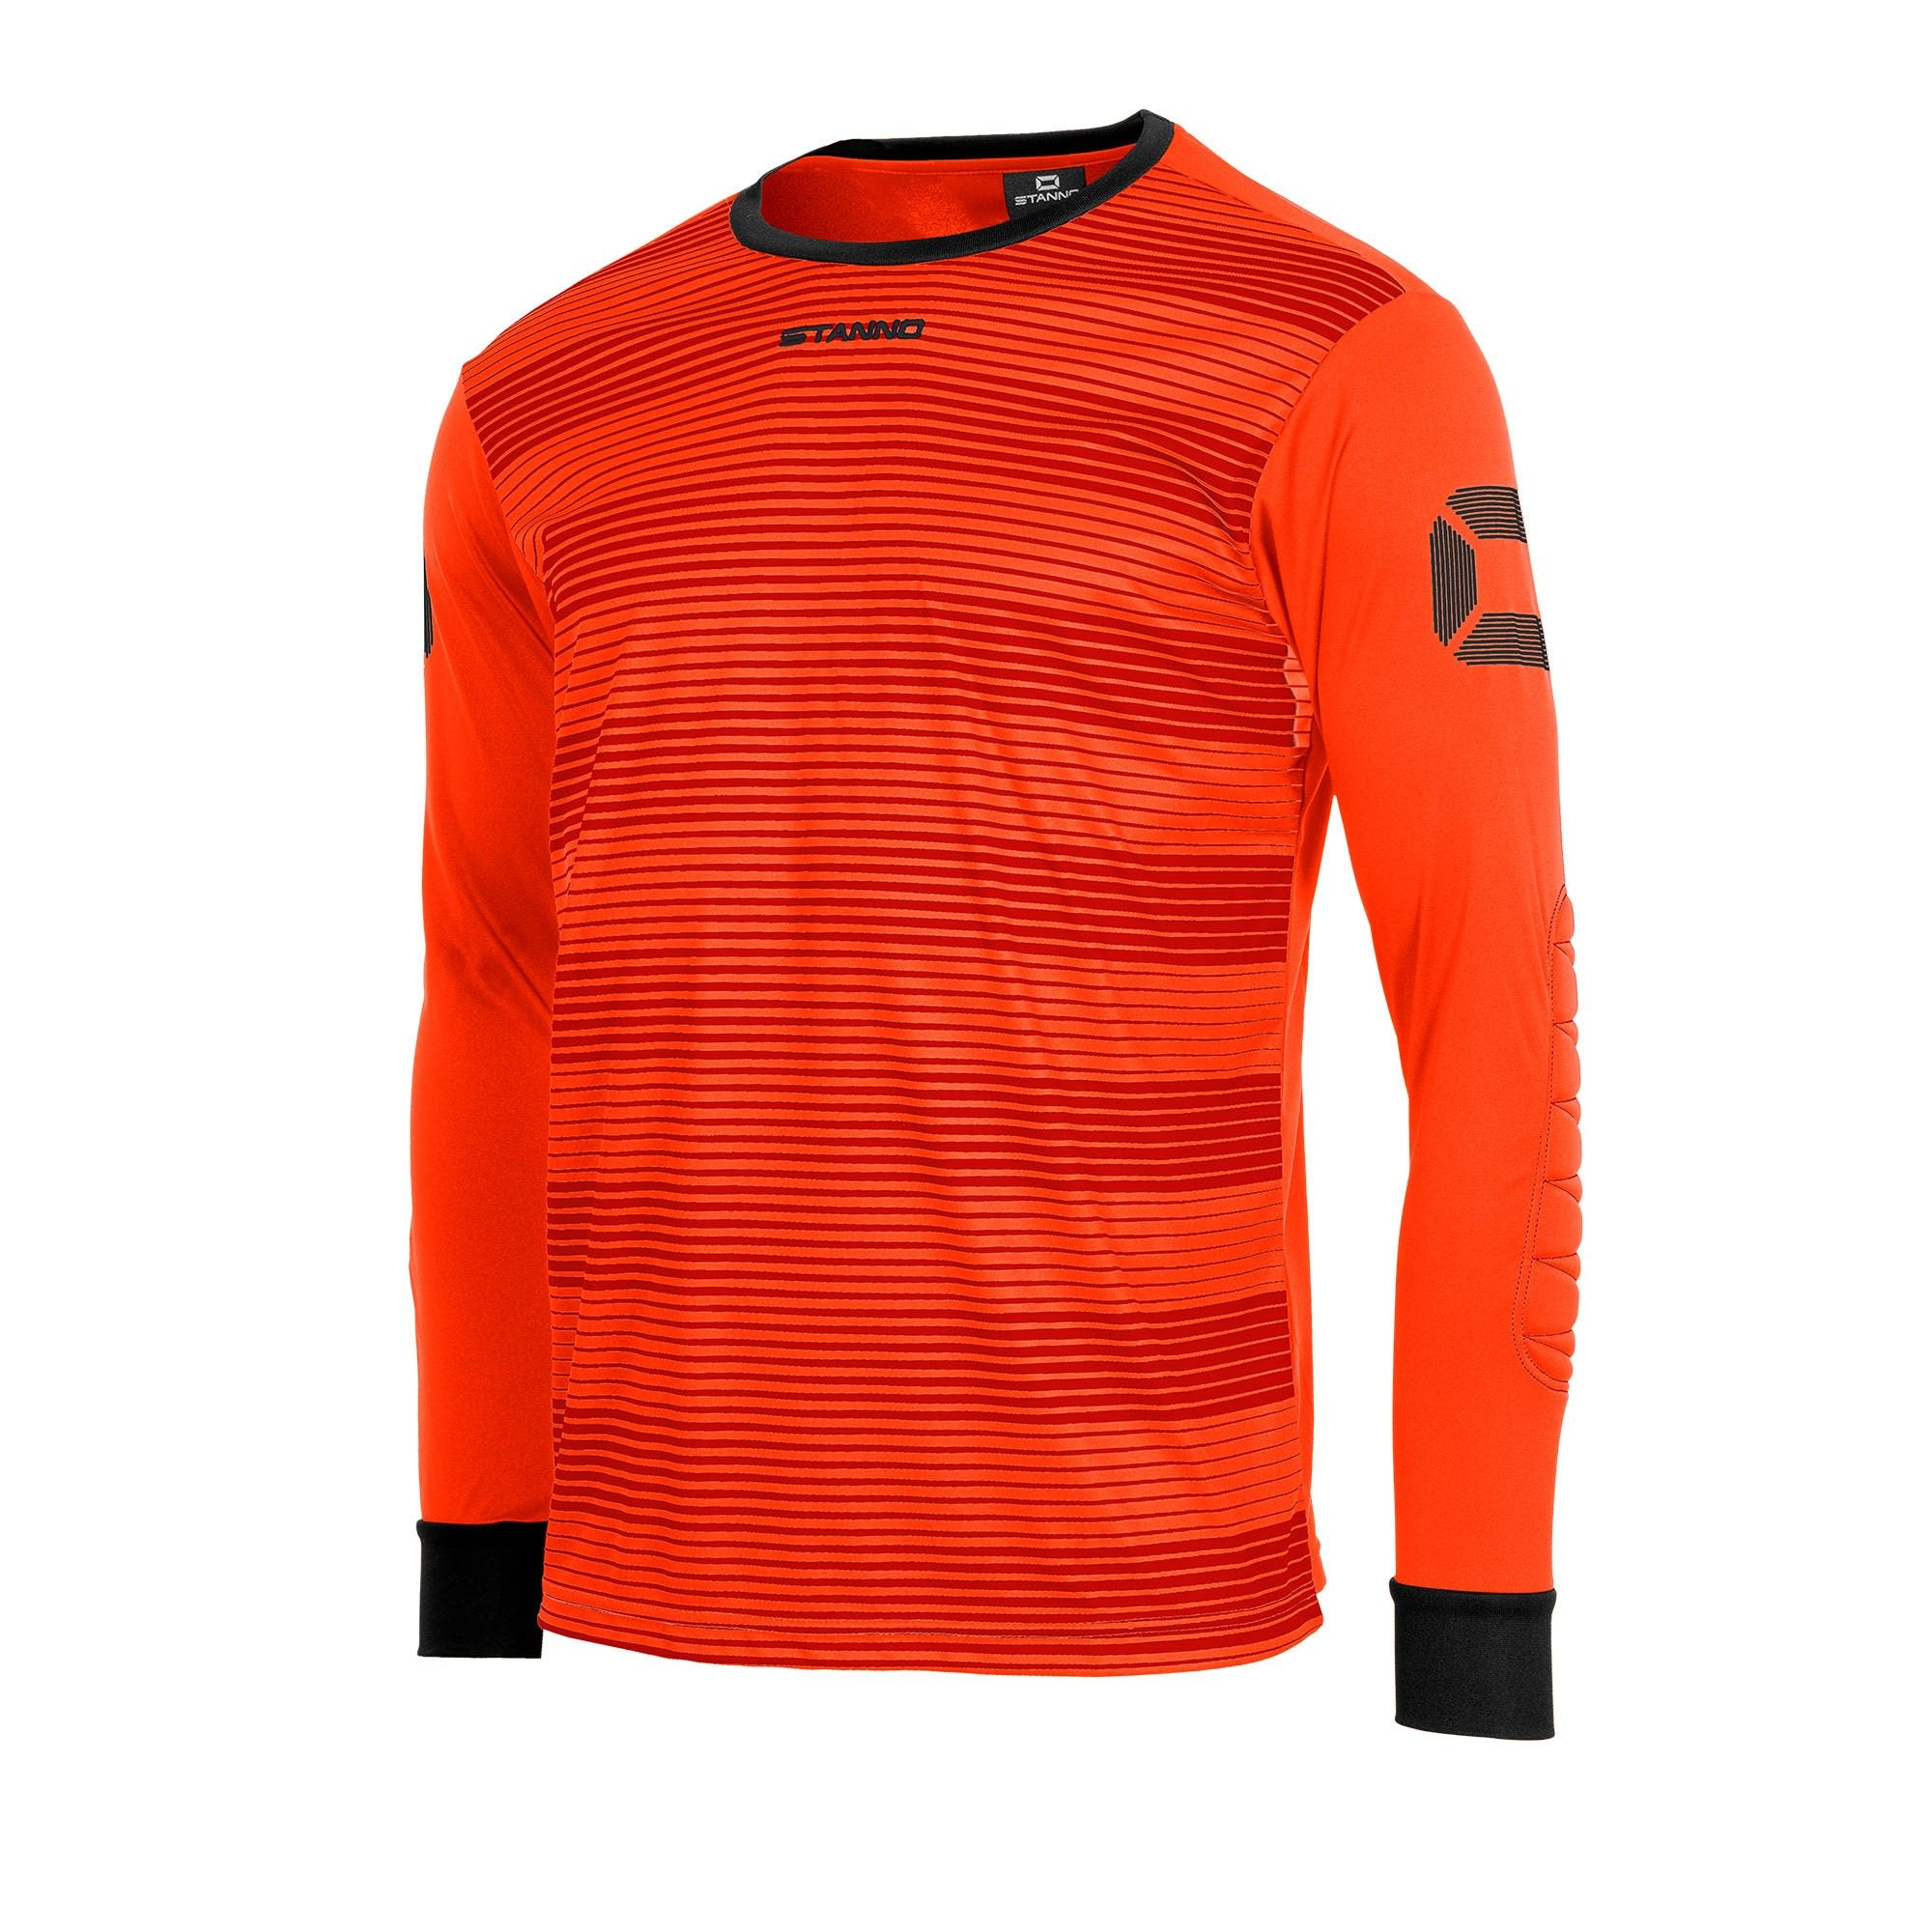 Stanno Tivoli Goalkeeper Shirt - Shocking Orange/Black